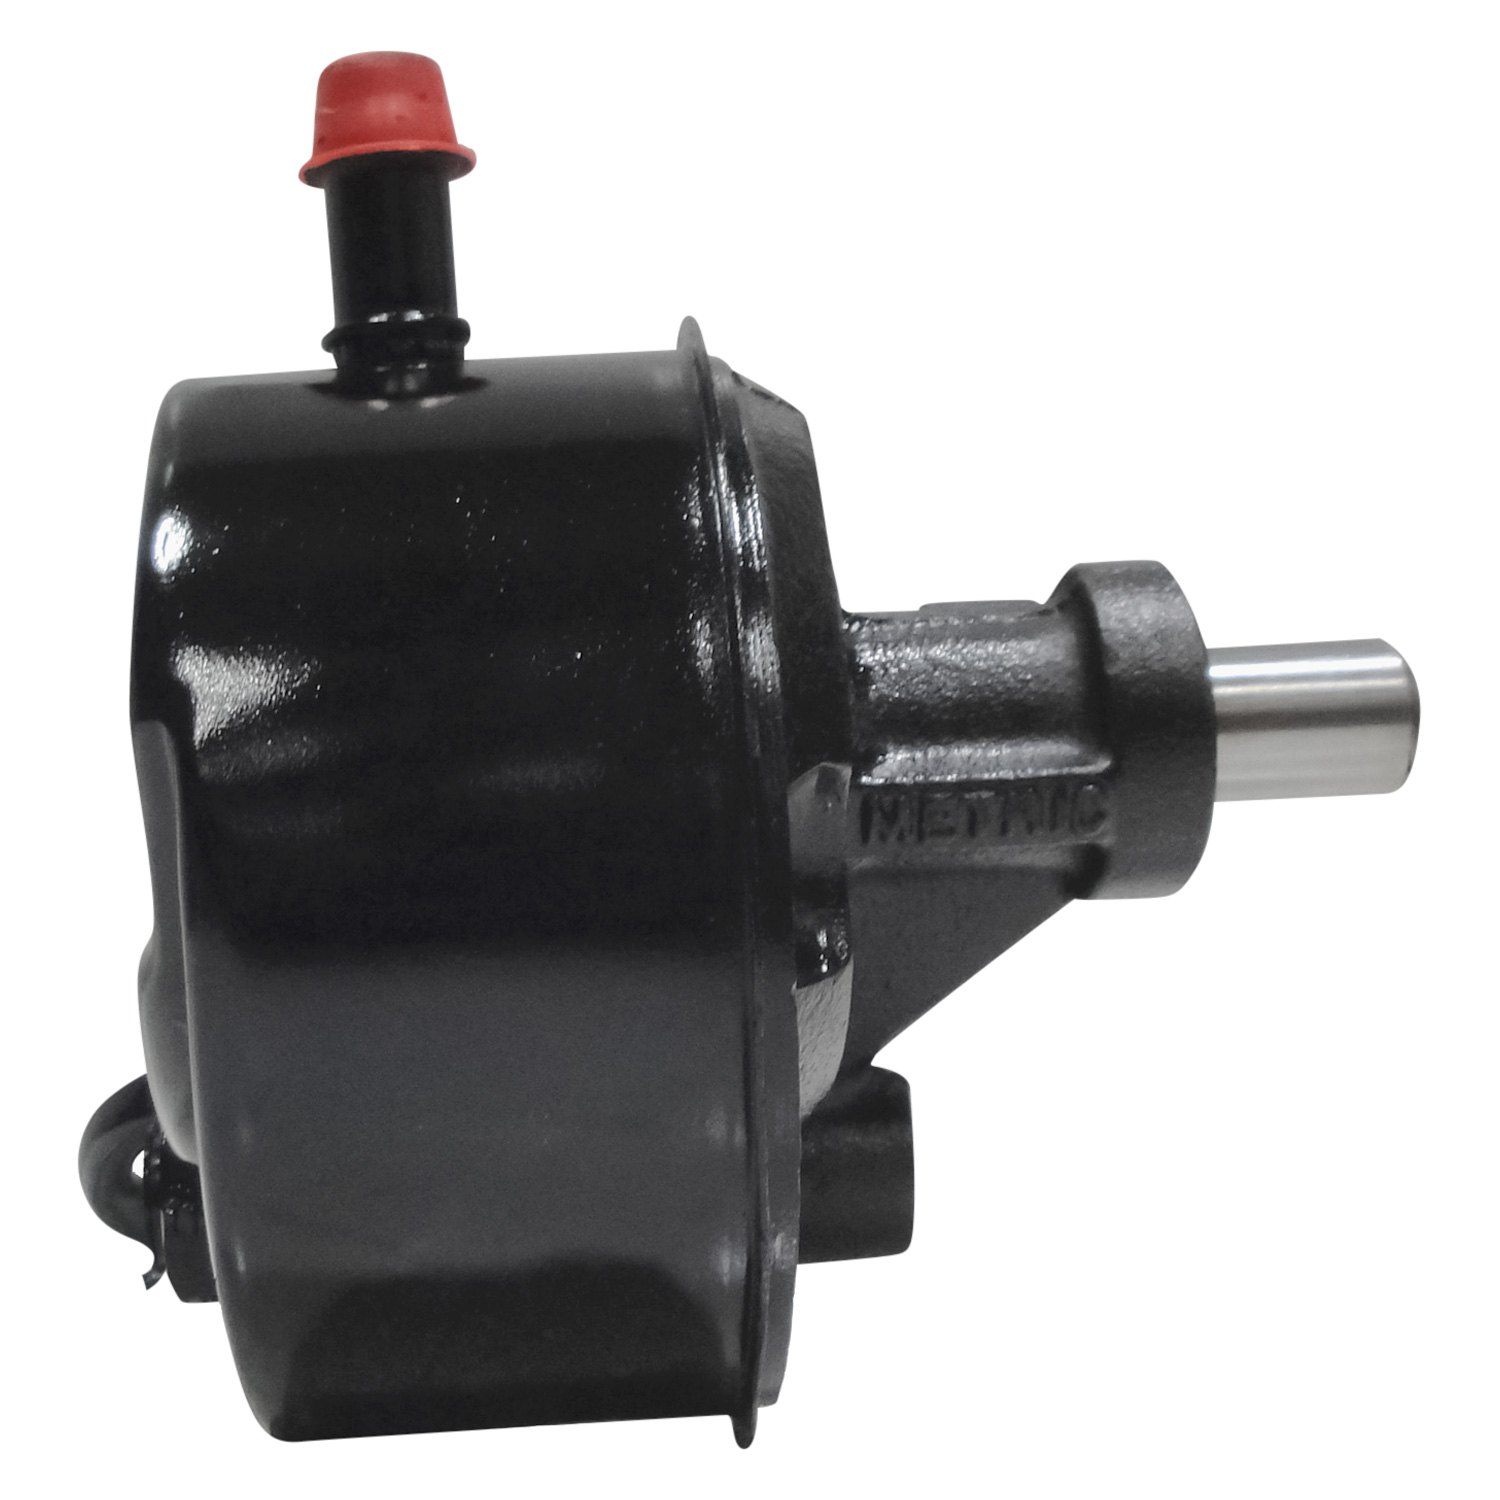 For Chevy Astro 1997-1998 Lares Remanufactured Power ...